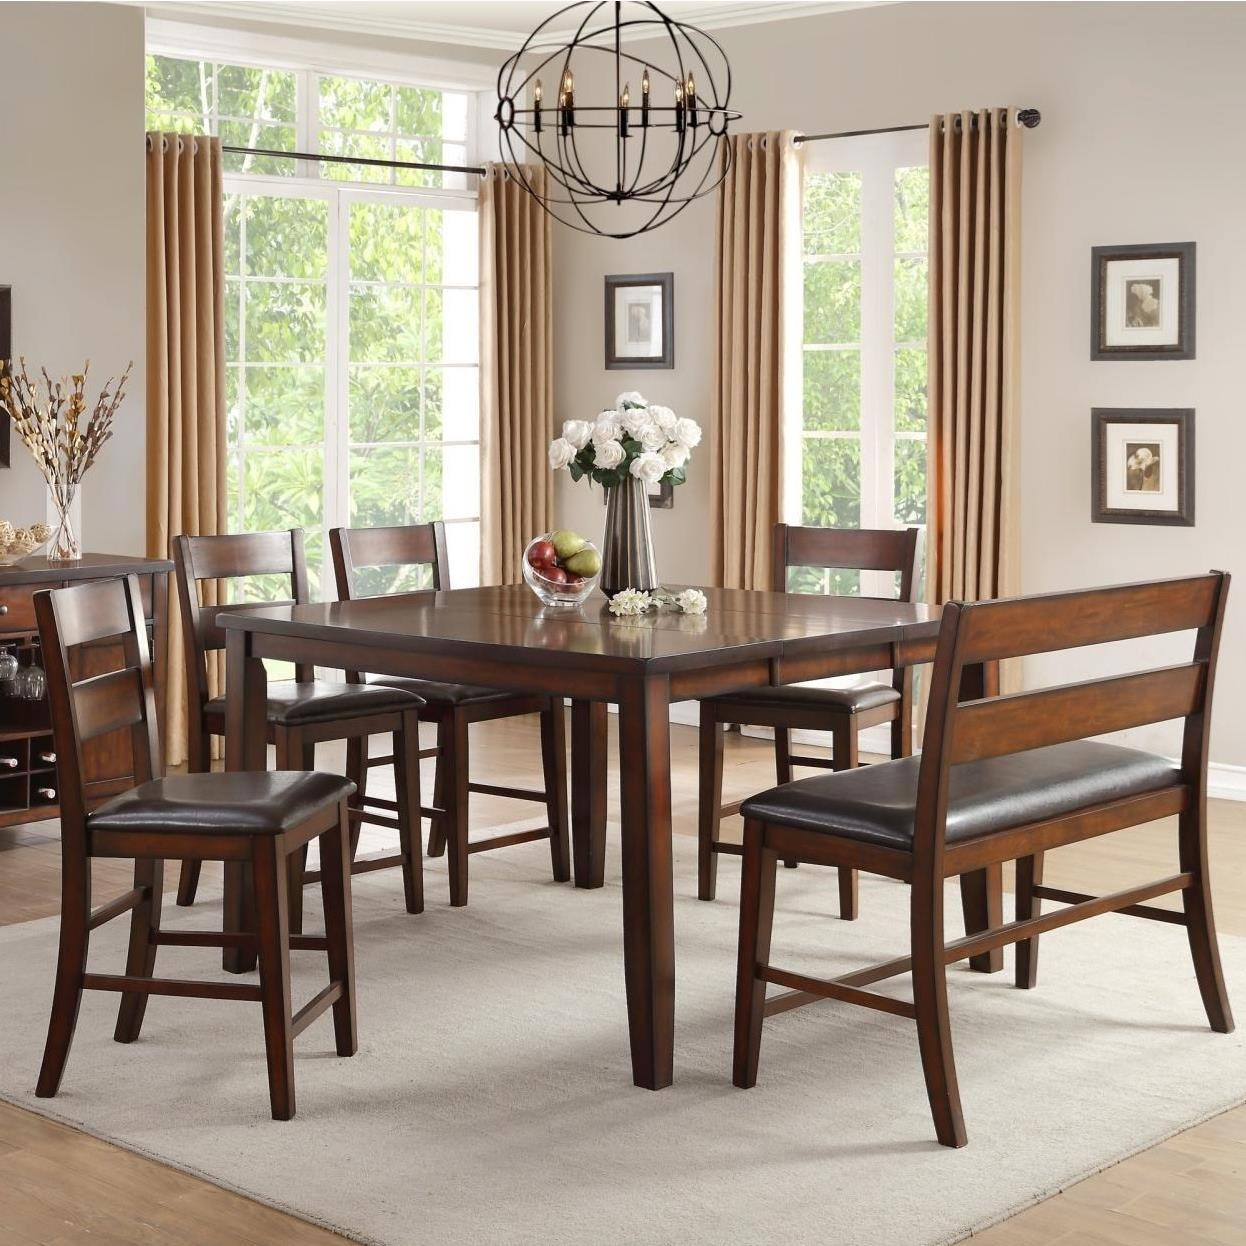 Homelegance Mantello Counter Height Table Amp Chair Set With